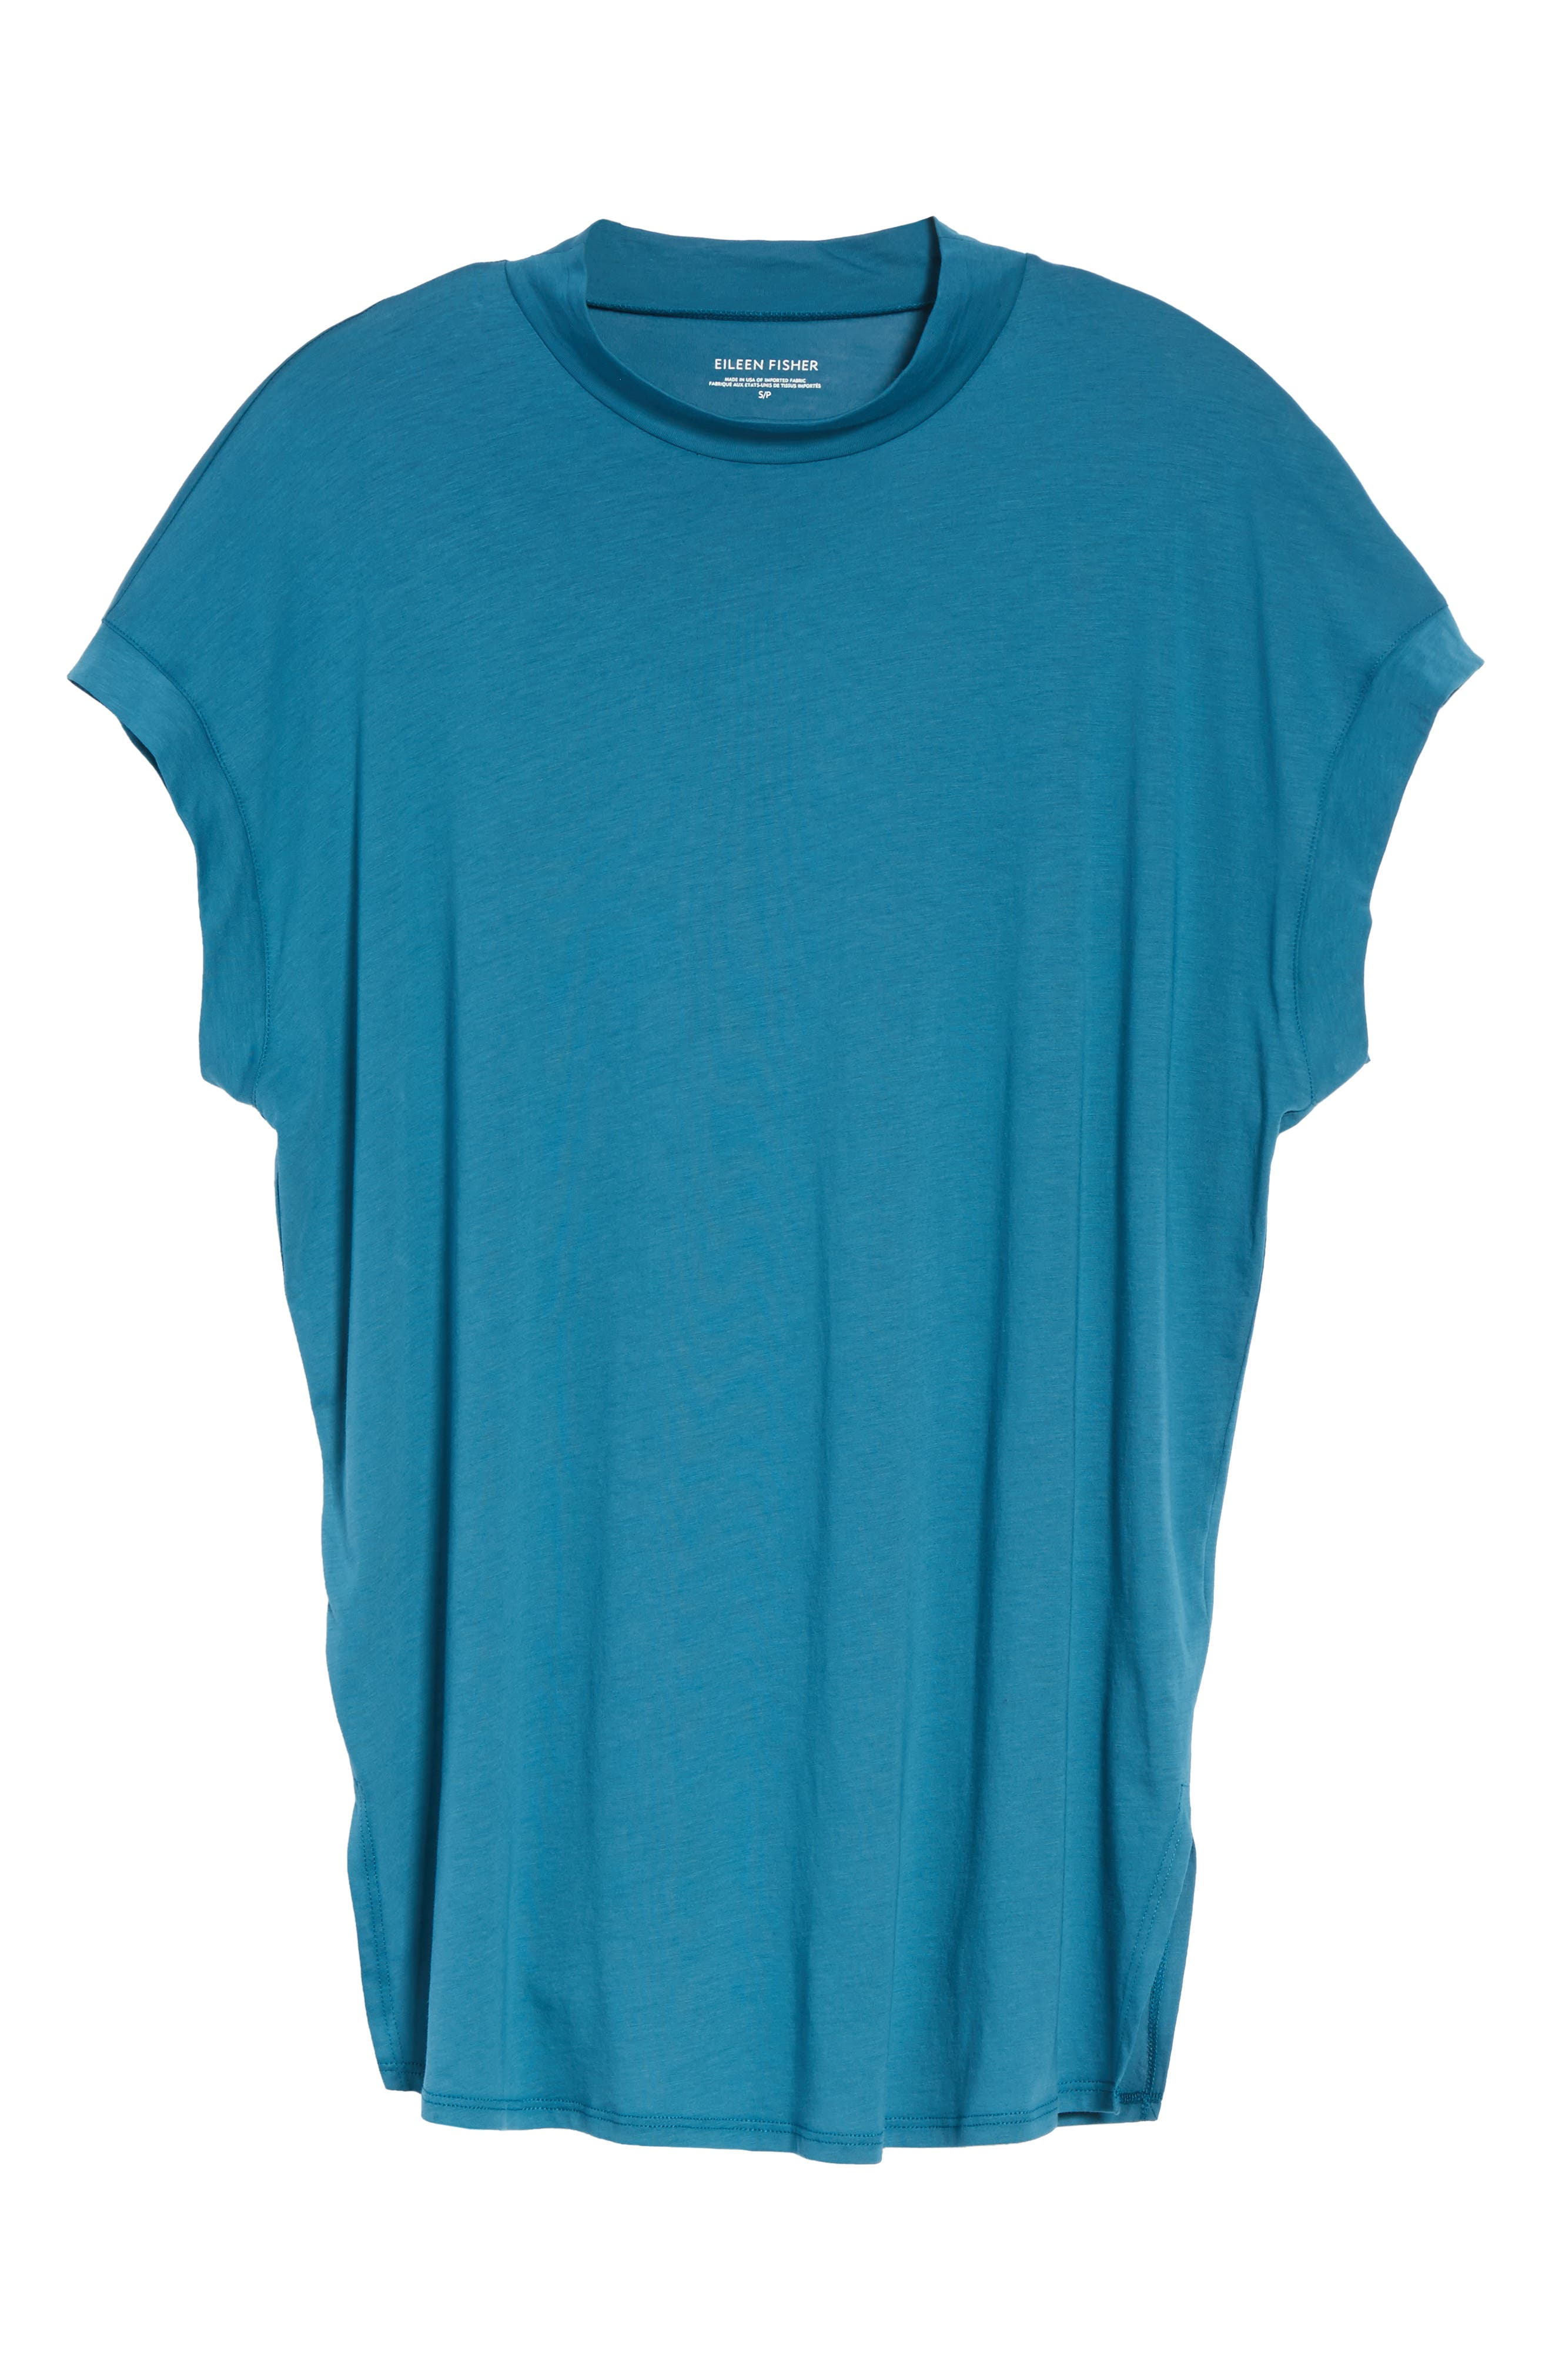 Slub Organic Cotton Top,                             Alternate thumbnail 6, color,                             Nile